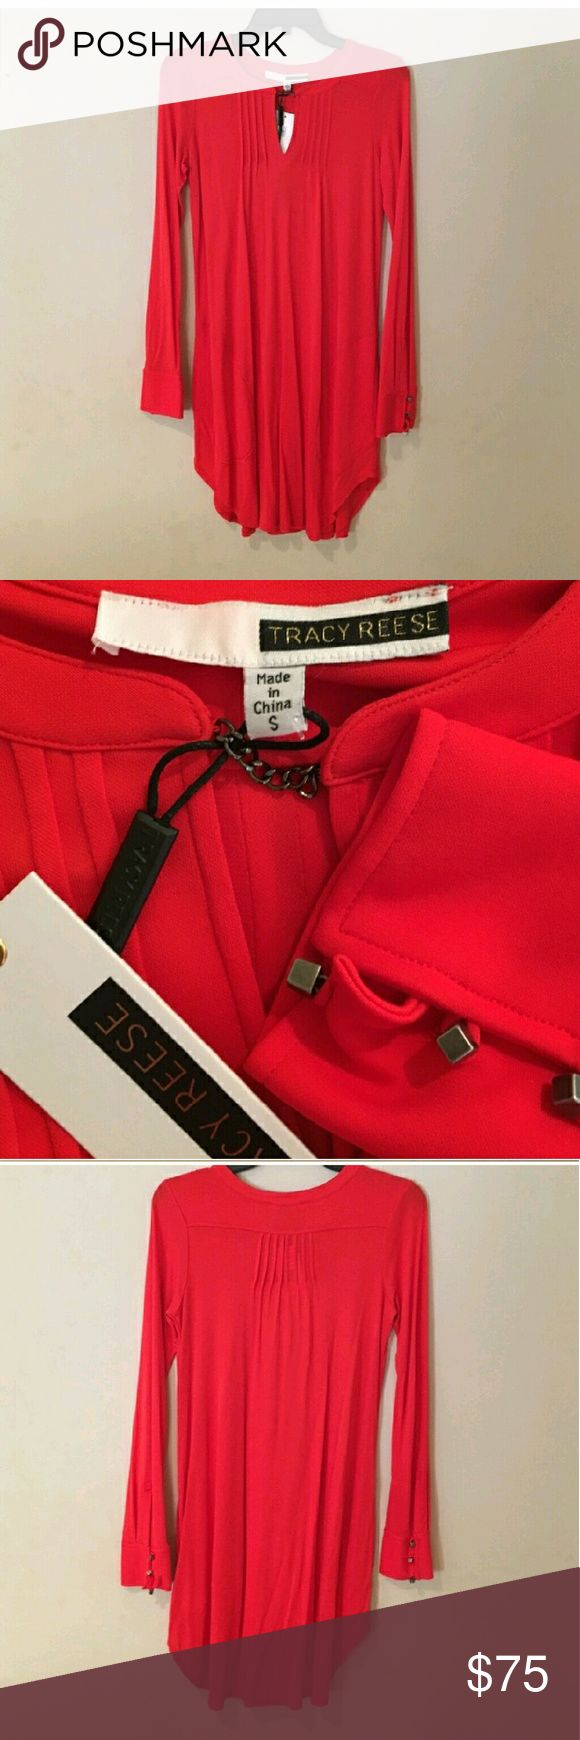 Nwt Tracy Reese Red Tunic size s Amazing Red Tunic by Tracy Reese size 2-6 as its quite forgivening. Can be worn with jeans or without Tracy Reese Dresses Long Sleeve